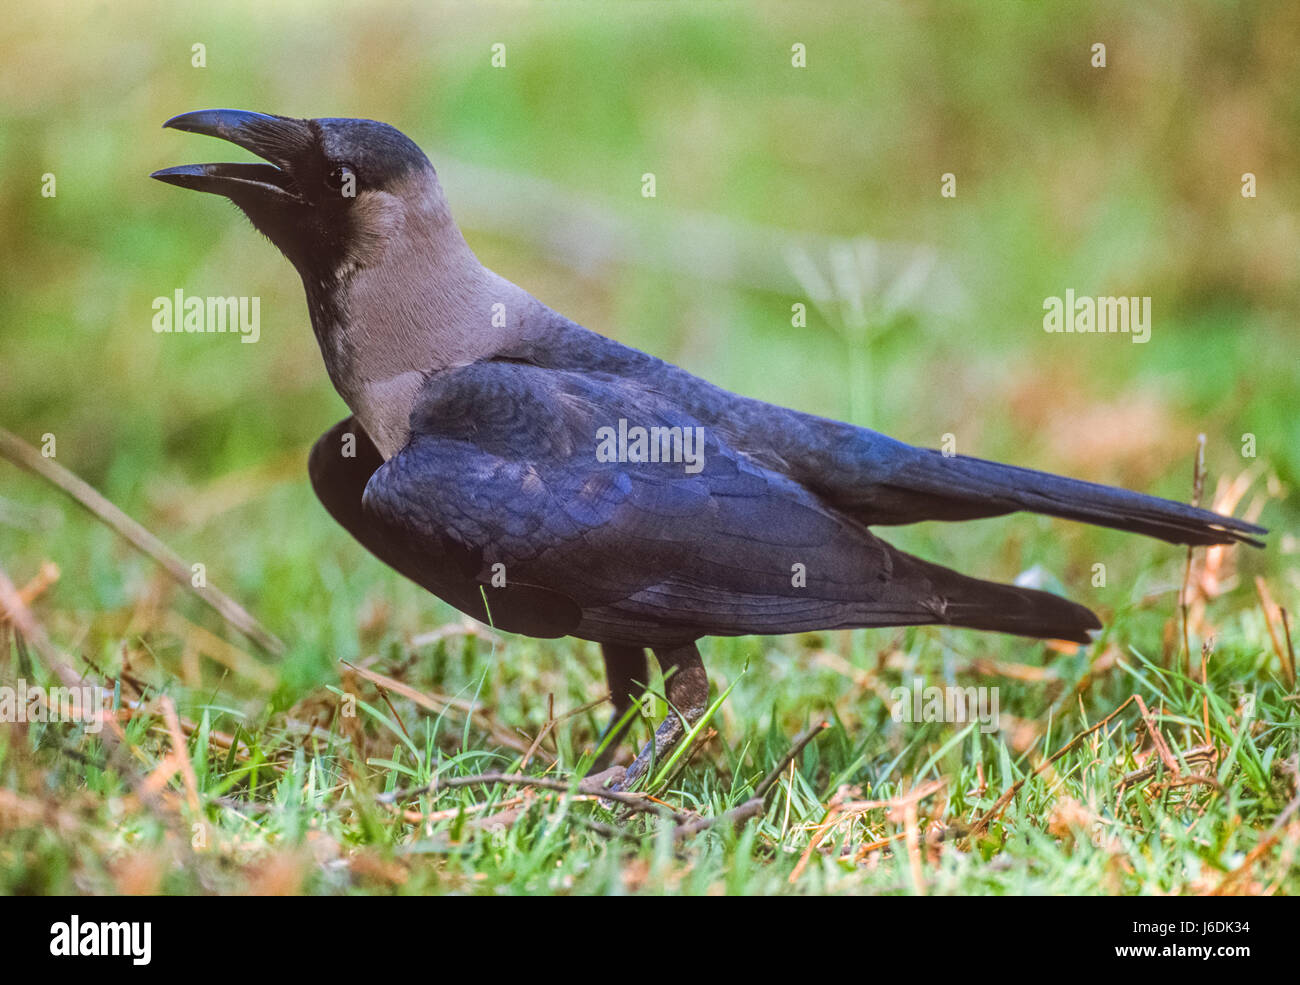 House Crow, , cooling down with beak open,Keoladeo Ghana National Park, Bharatpur, Rajasthan, India - Stock Image